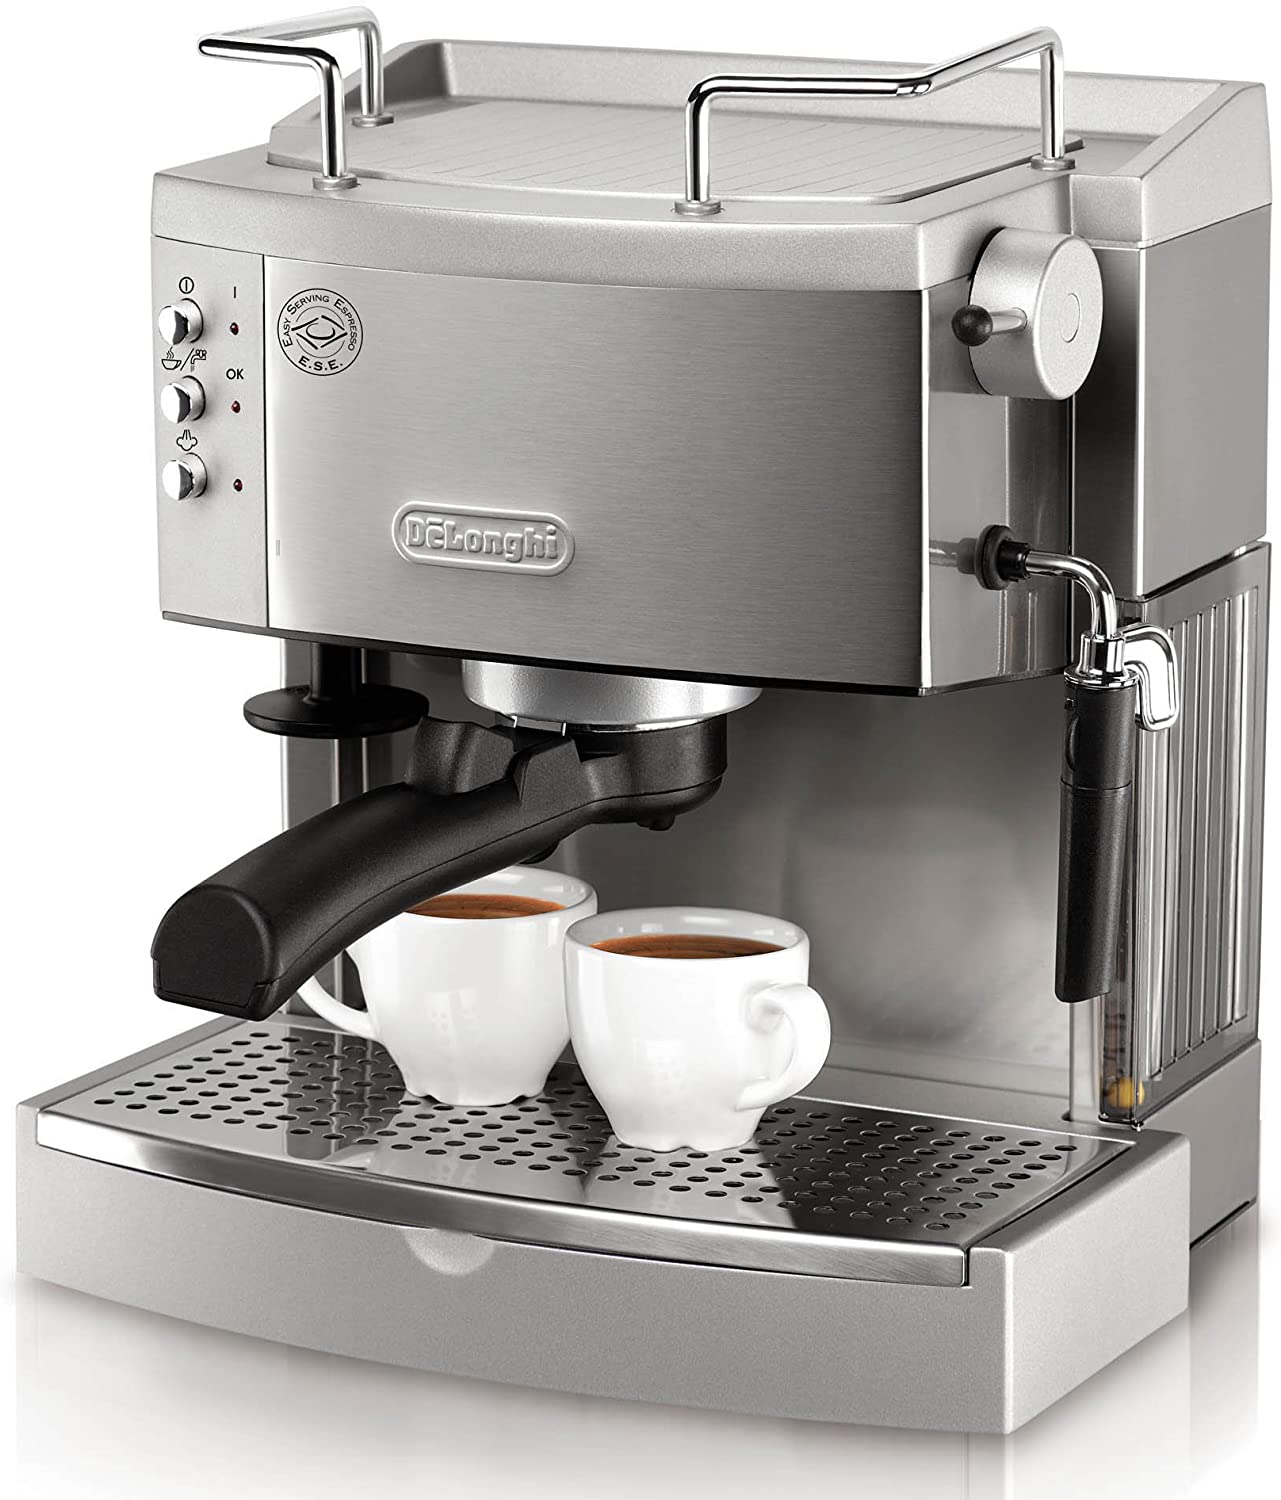 DeLonghi EC702 15 Bar Pump Espresso Maker